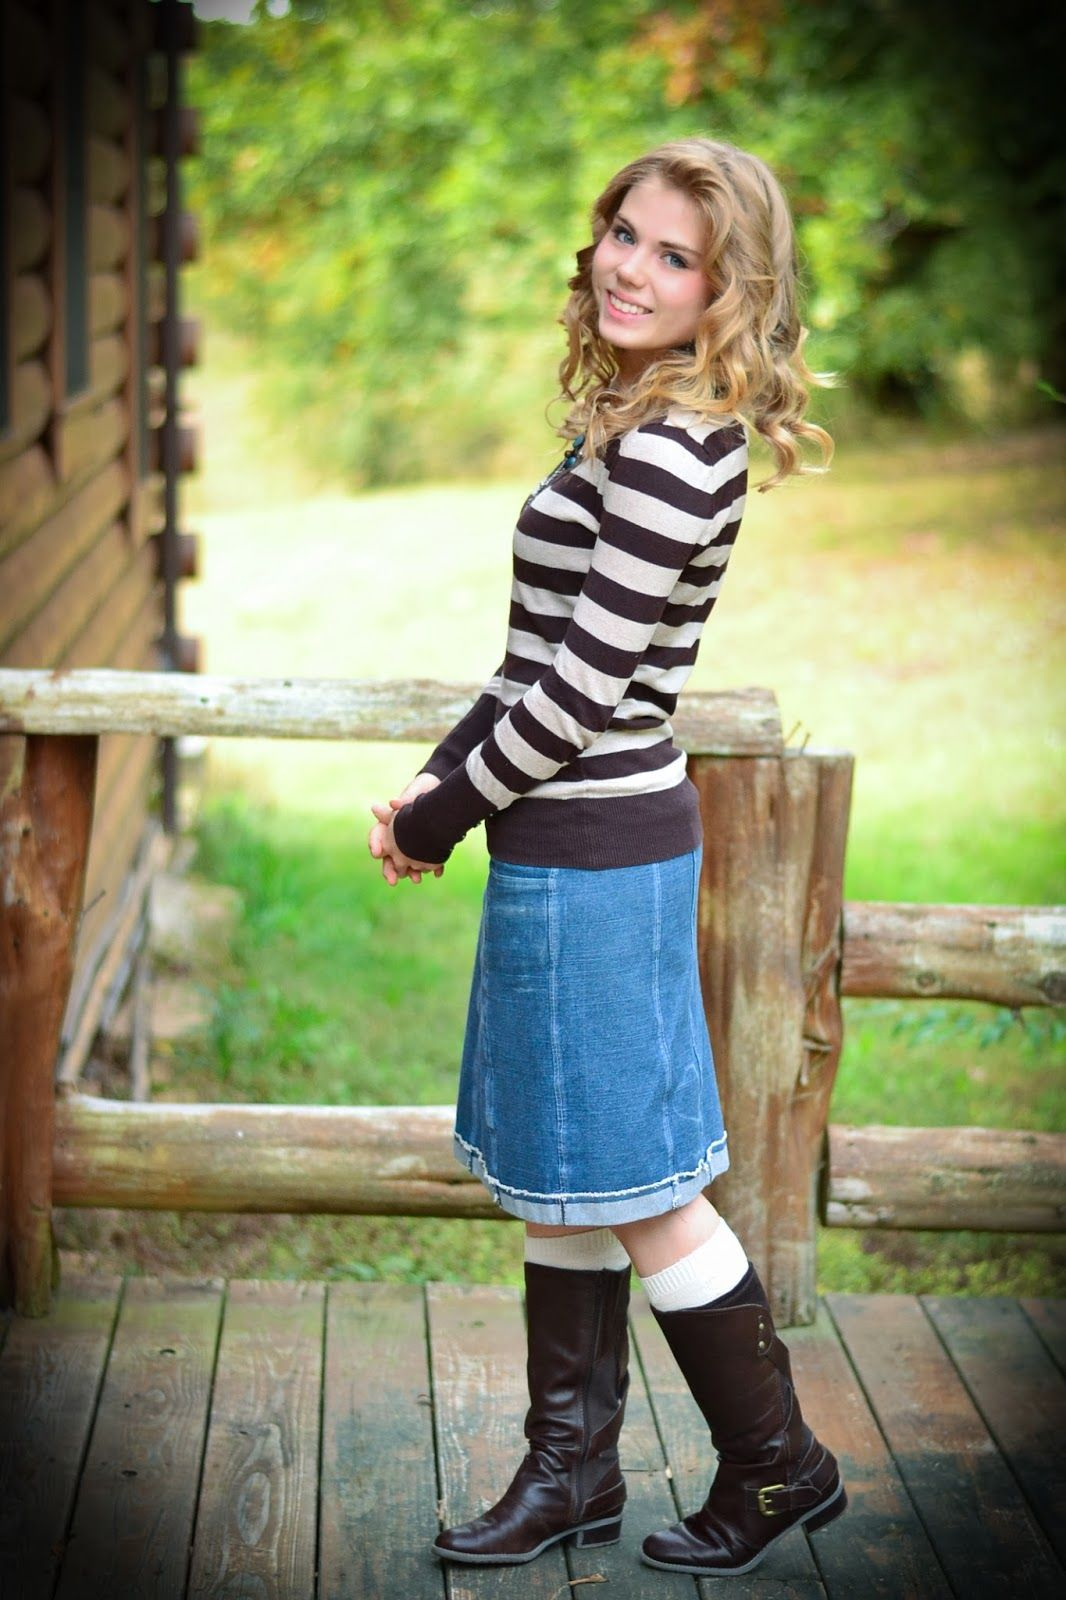 Fresh Modesty This Girl Has Tons Of Clothing Ideas